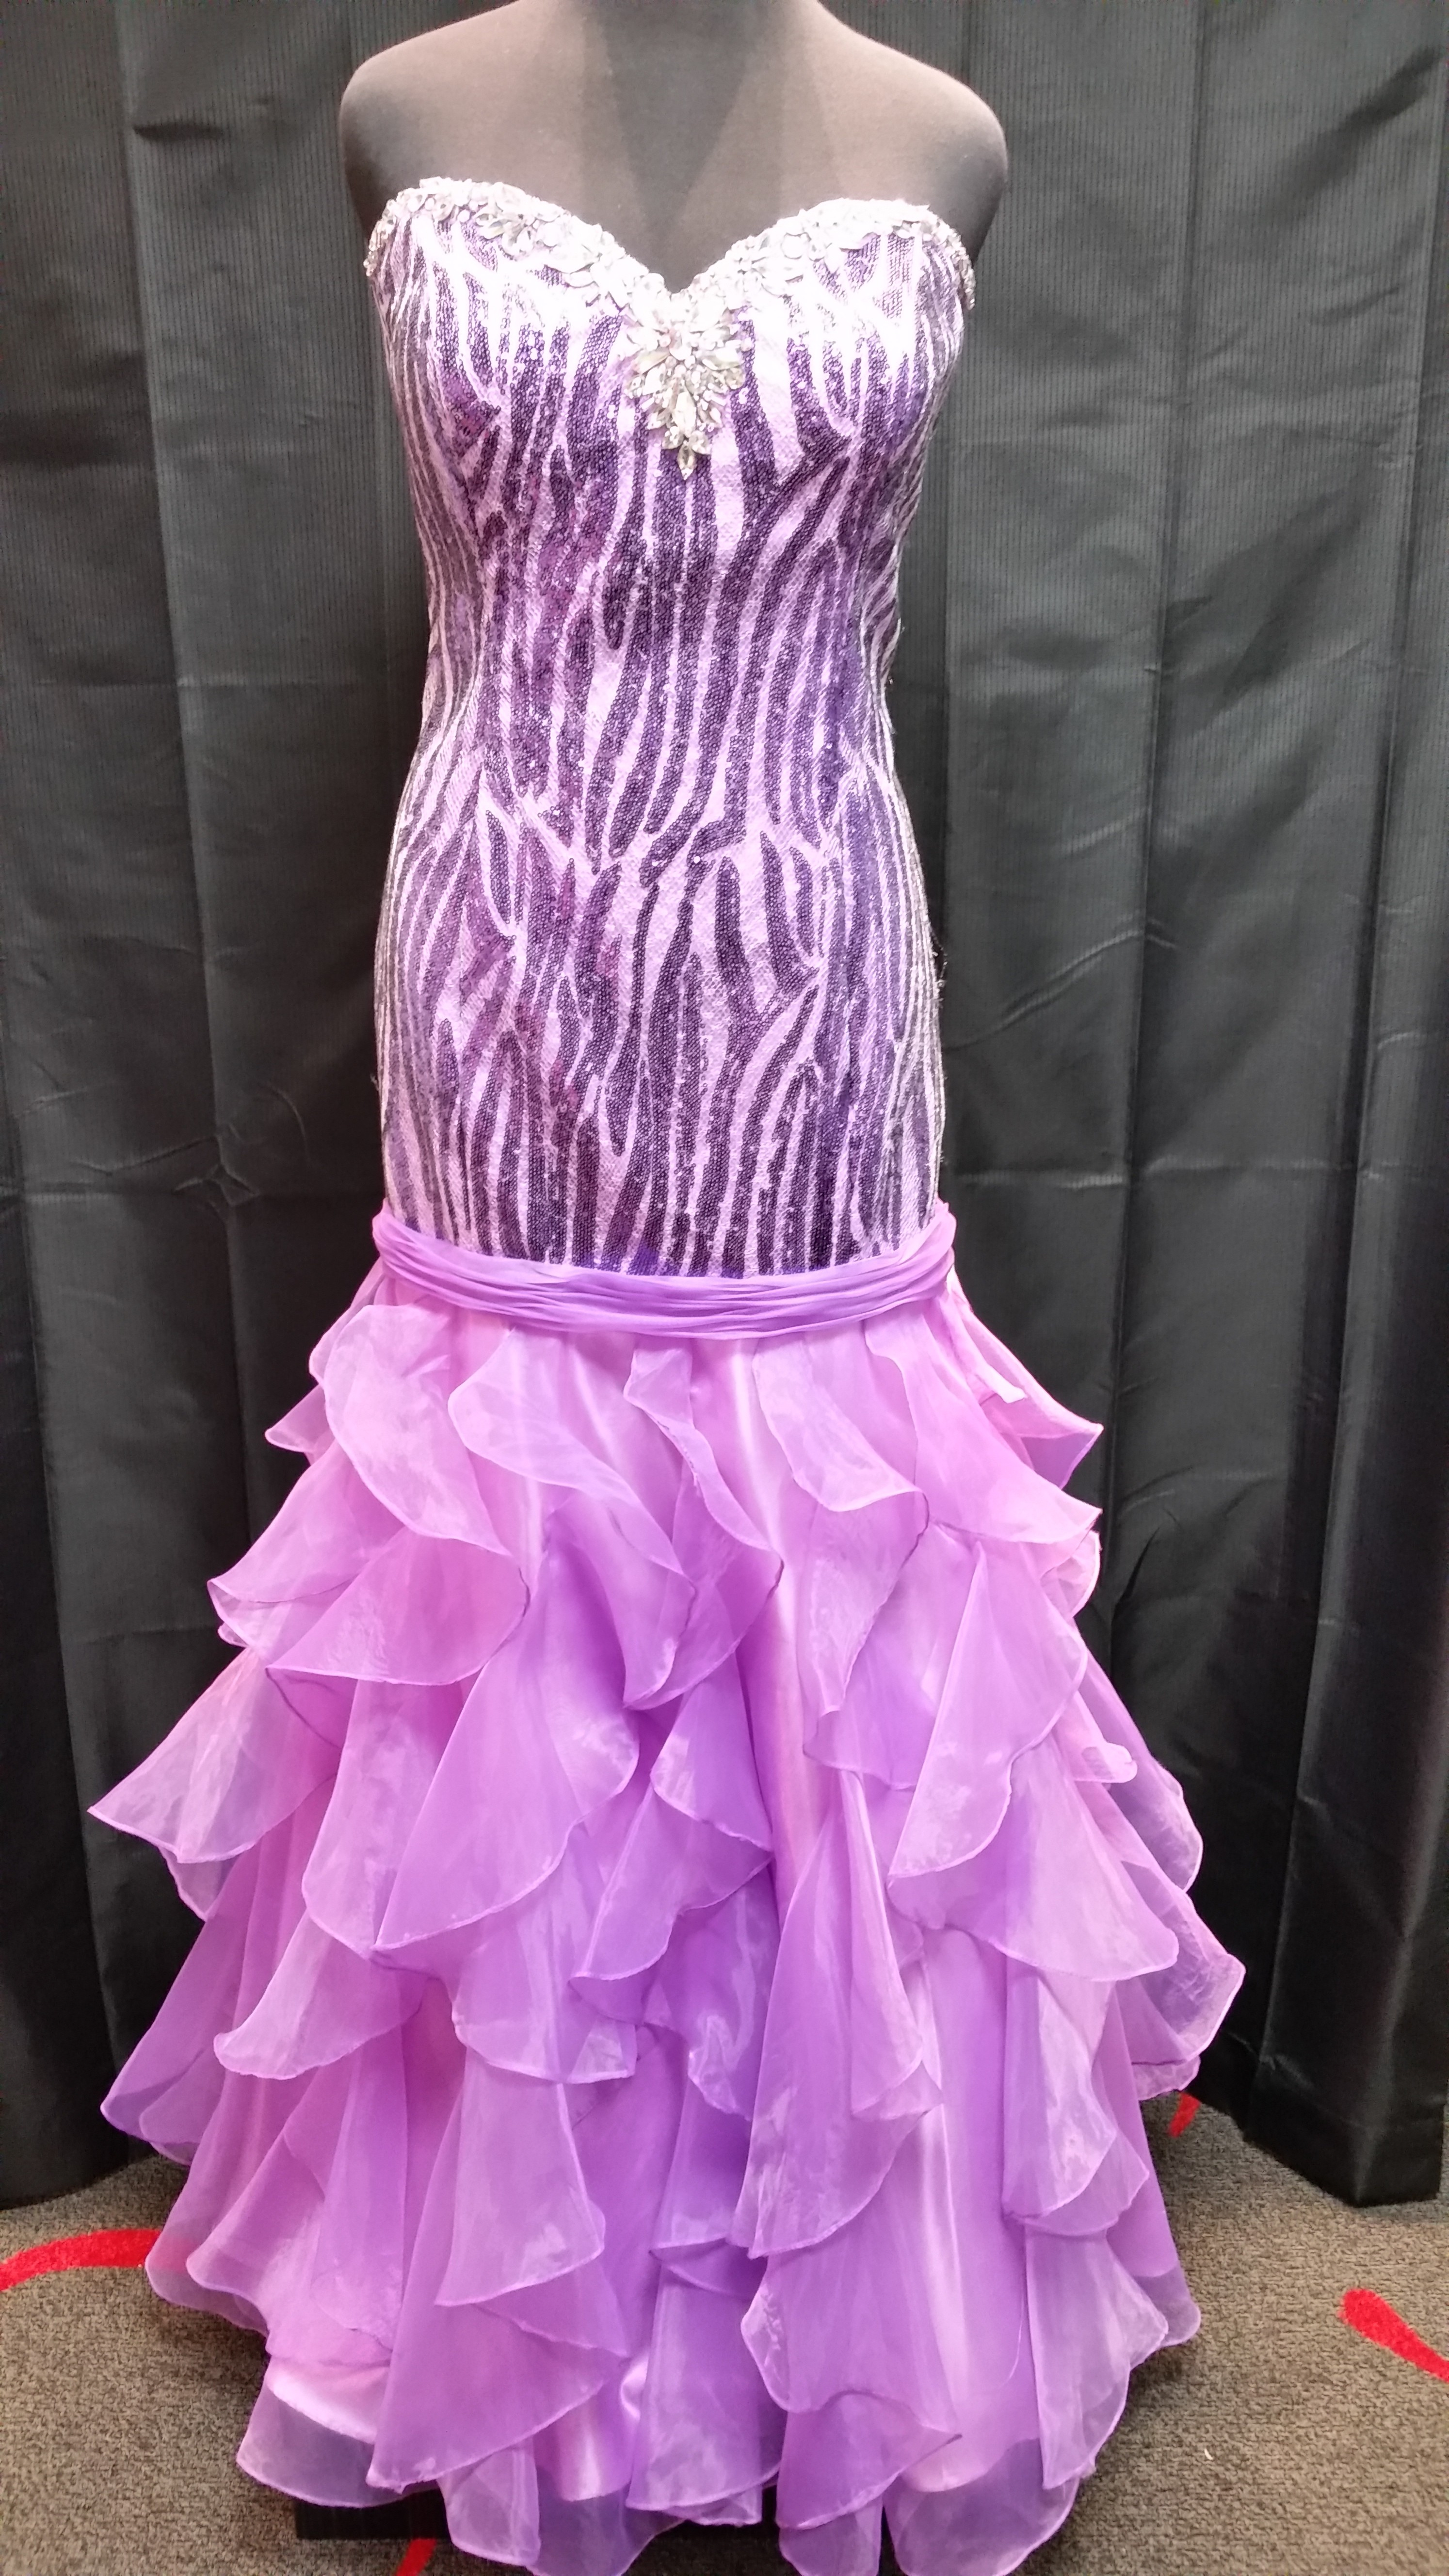 Fabulous Fit And Flare Plus Size Prom Dresses Strut